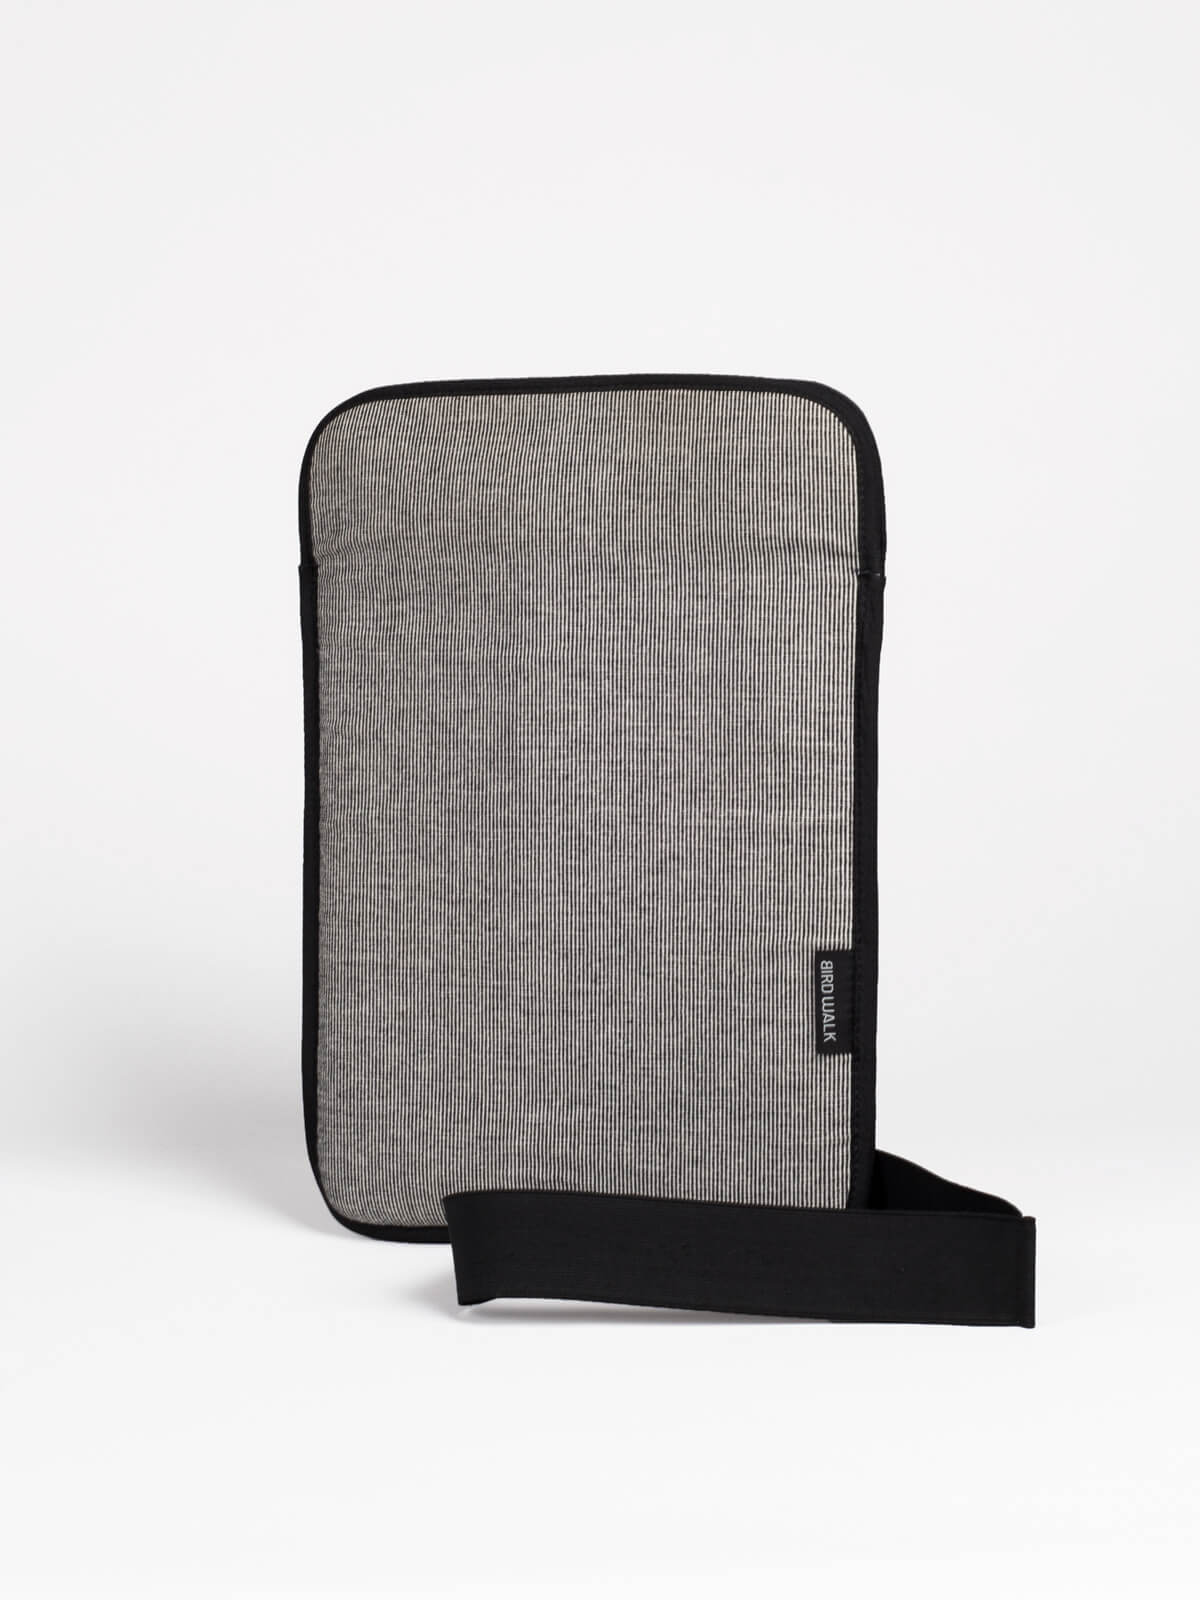 laptop sleeve 13 inch macbook pro made in Portugal organic cotton